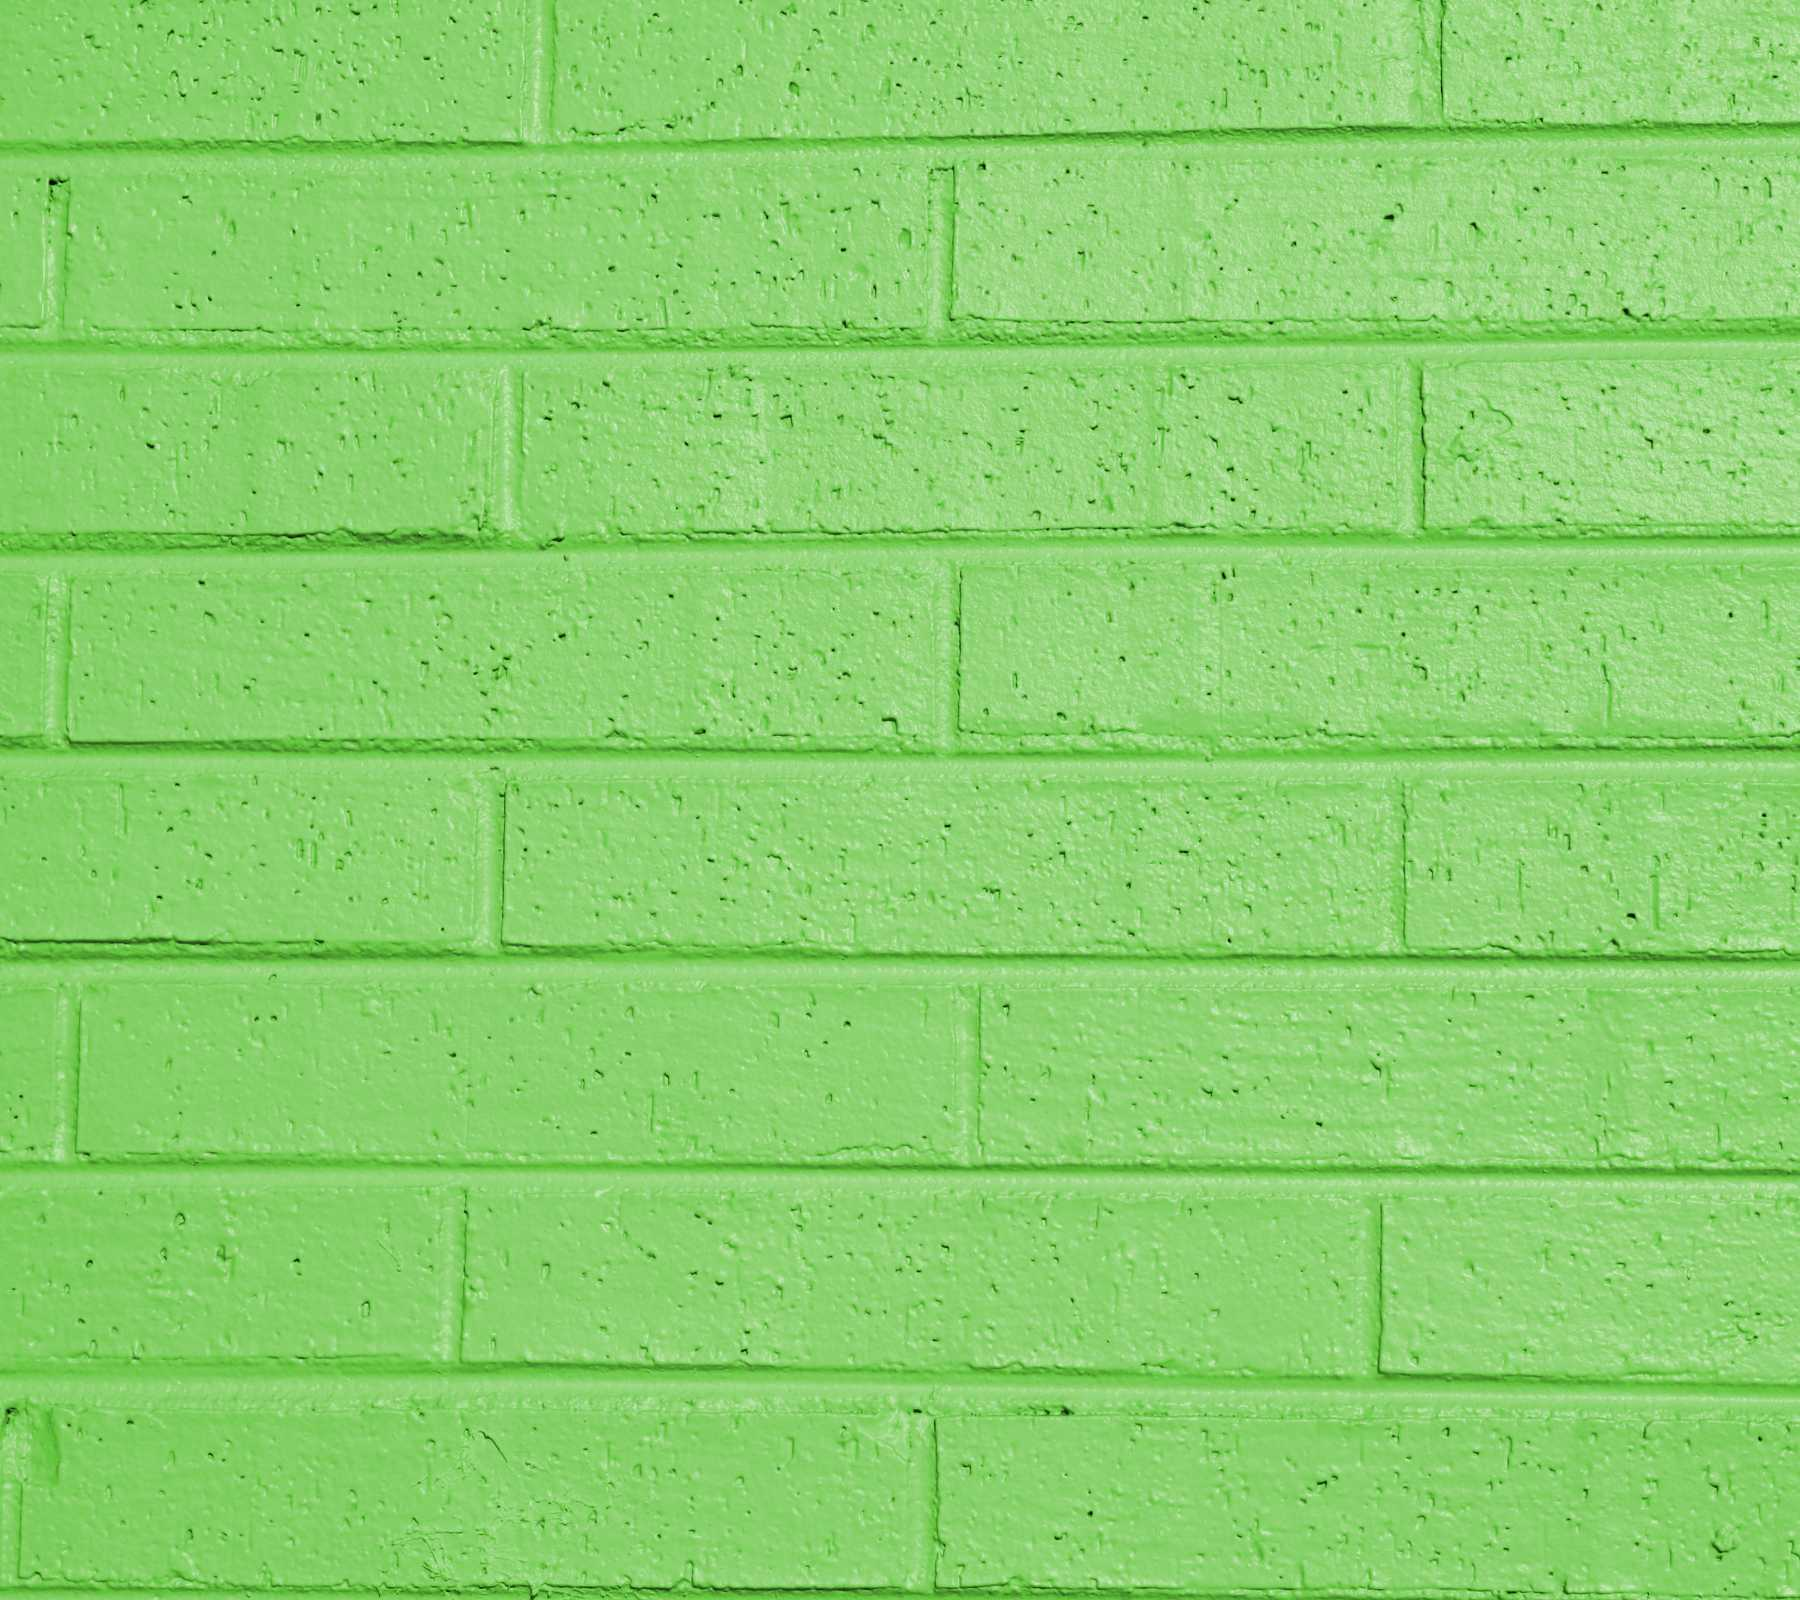 Lime Brick On Image : Lime green painted brick wall background image wallpaper